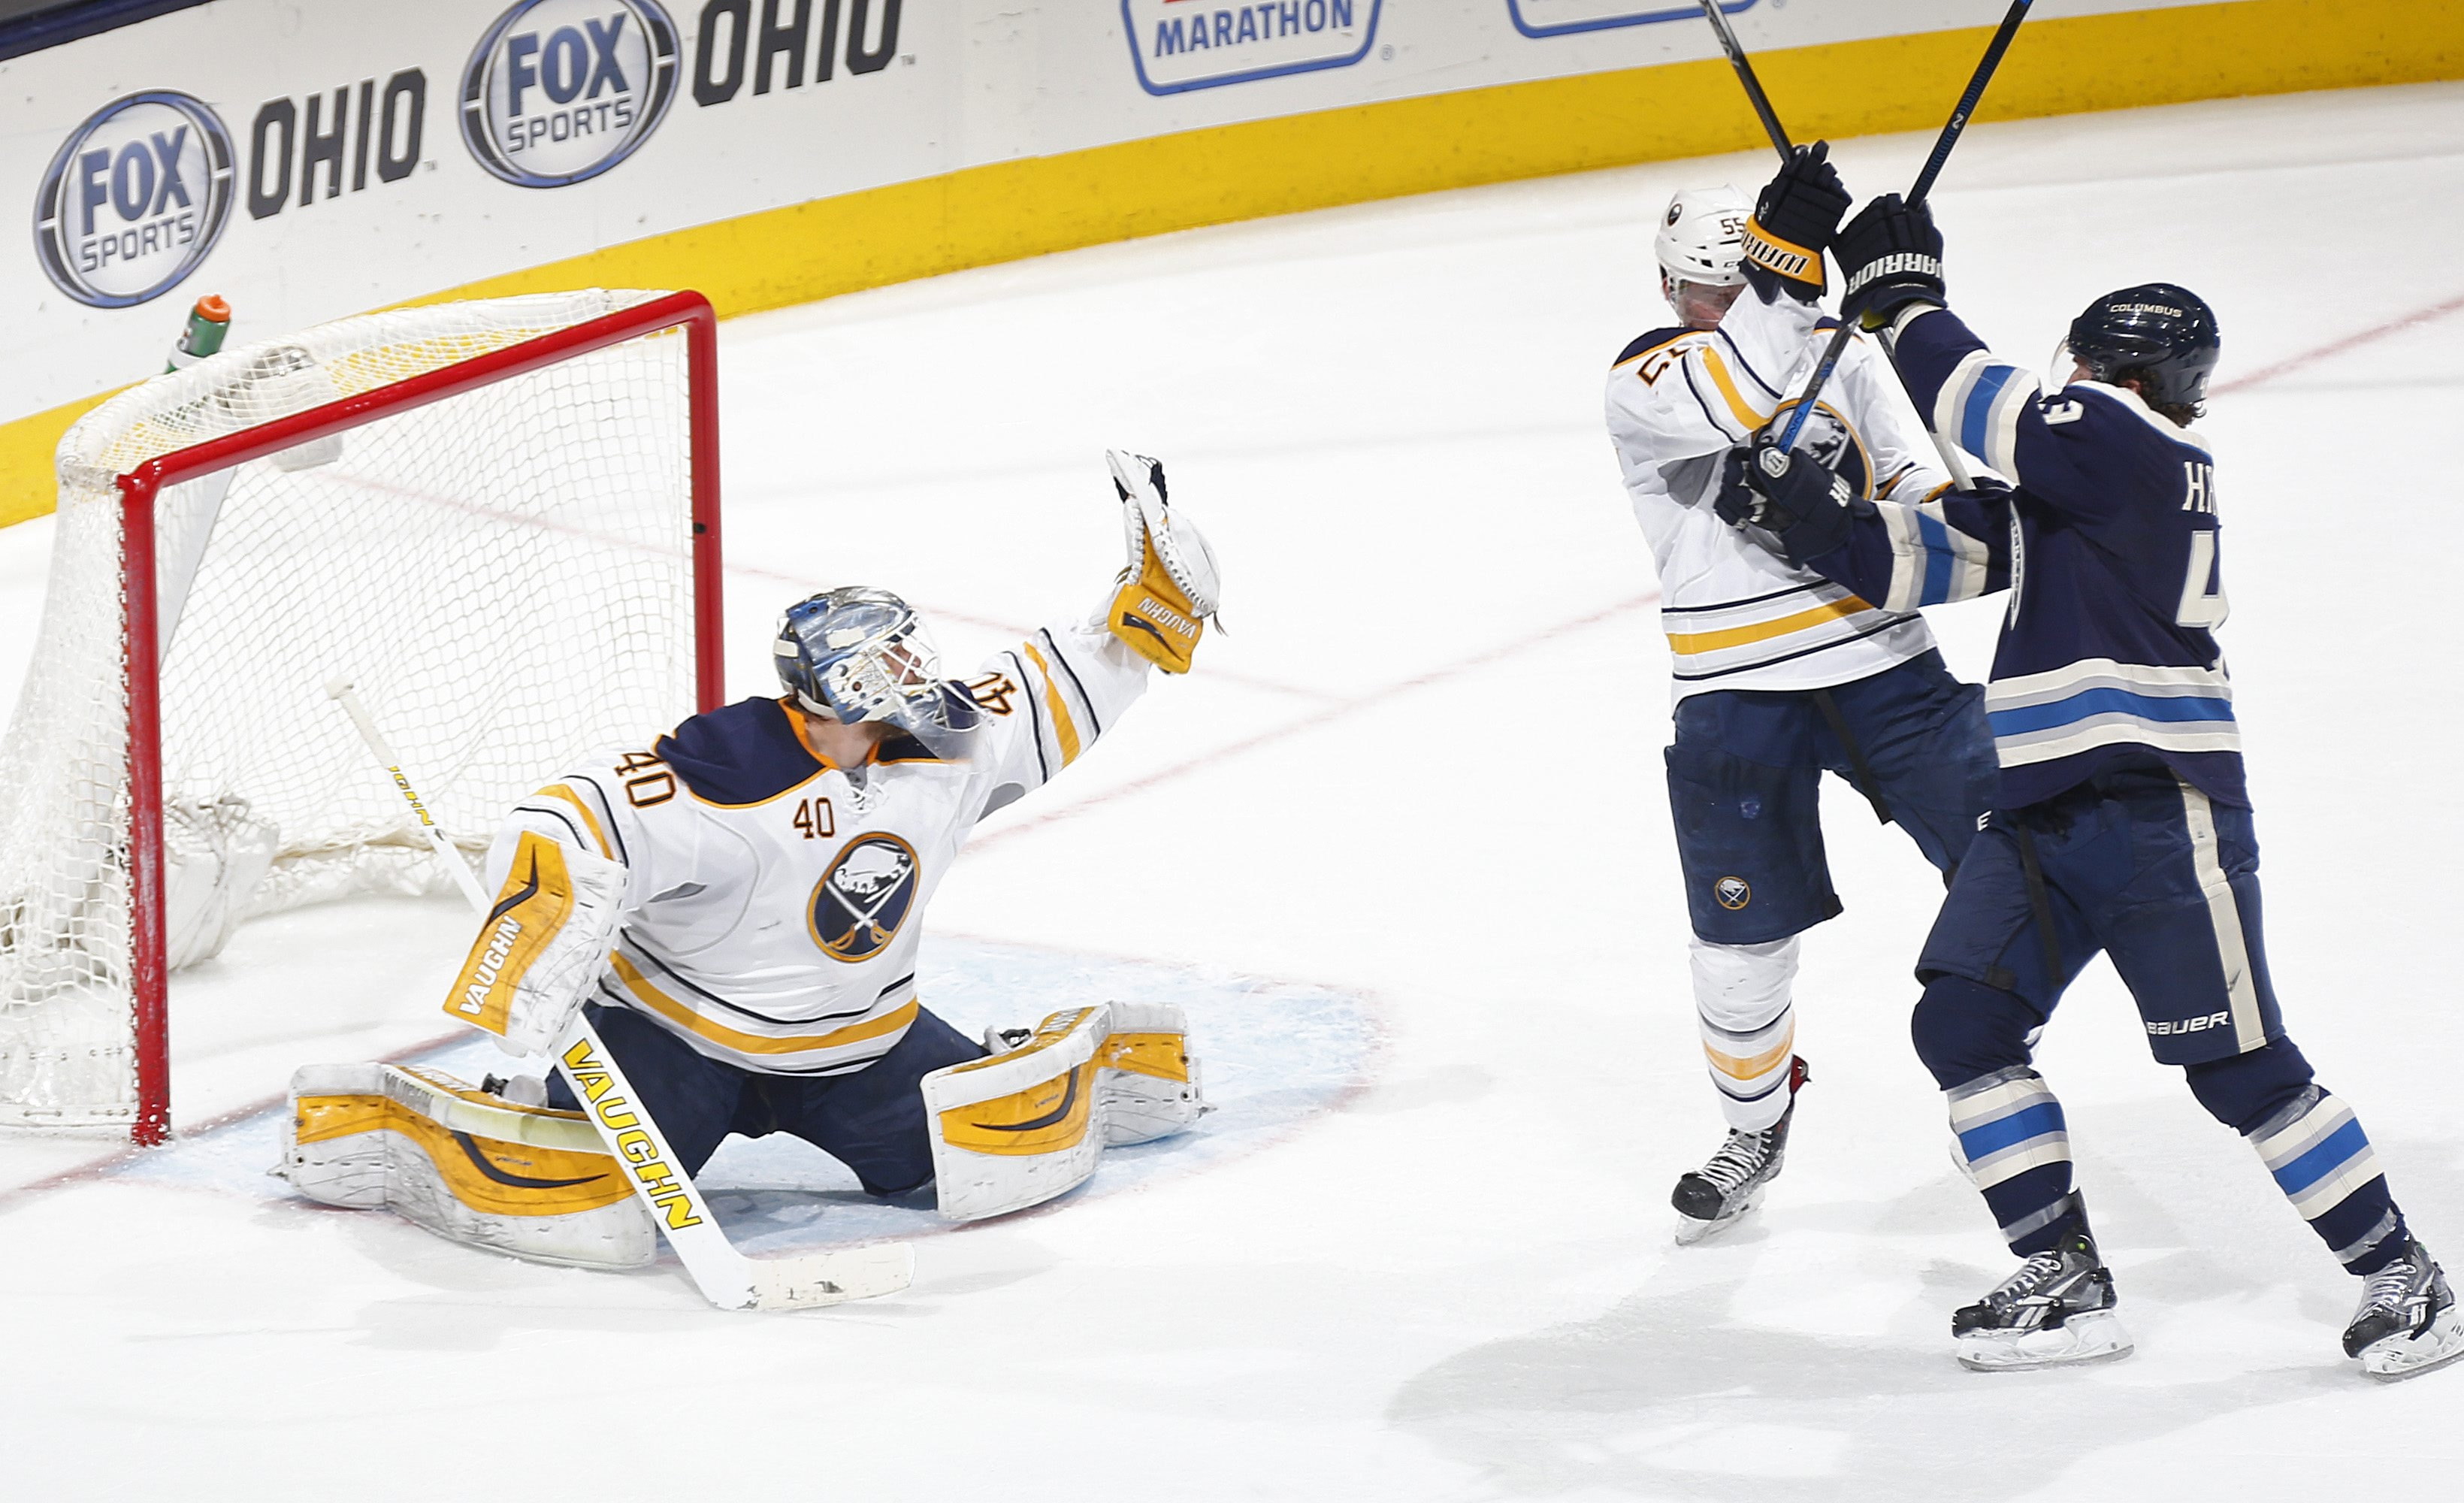 Sabres goalie Robin Lehner grabs the puck Friday as Blue Jackets left wing Scott Hartnell and Sabres defenseman Rasmus Ristolainen battle in front of the net at Nationwide Arena.